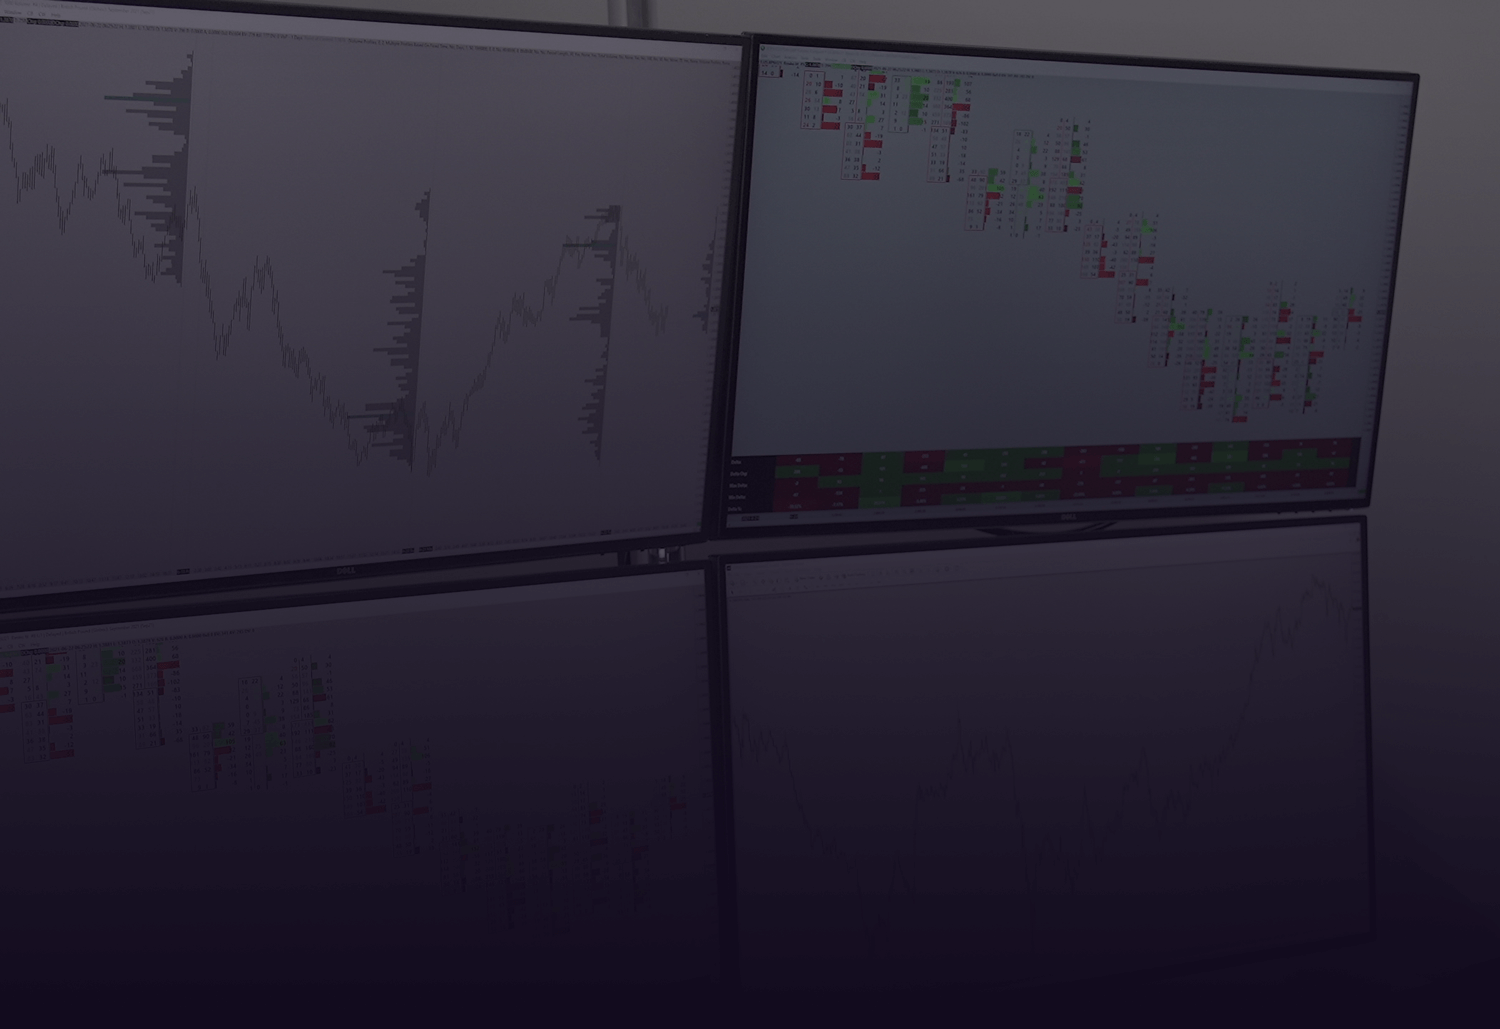 Background image with charts